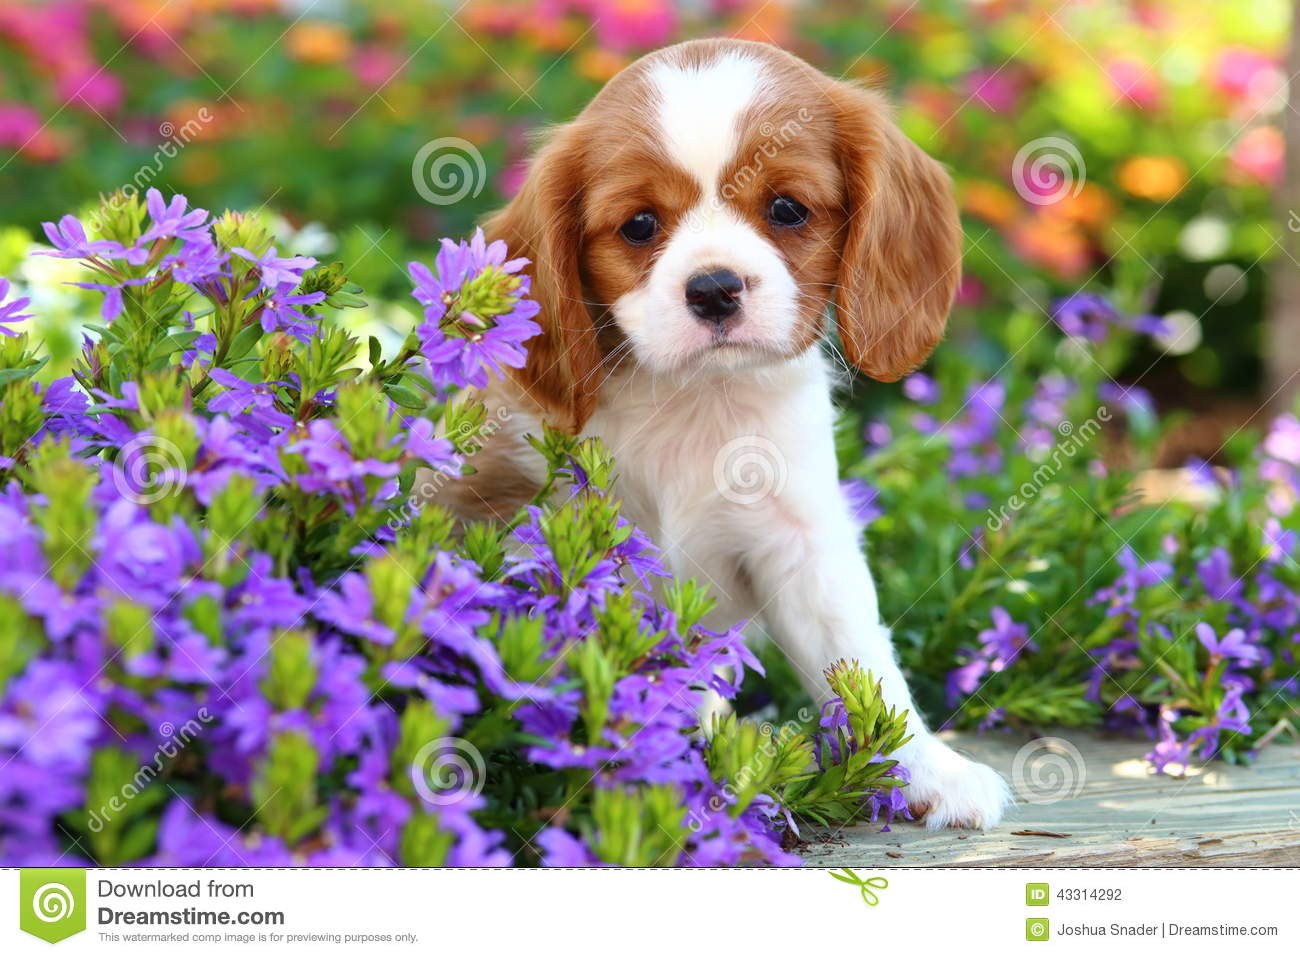 Cute Cavalier King Charles Spaniel Puppy 2 Stock Photo Image Of Charles King 43314292